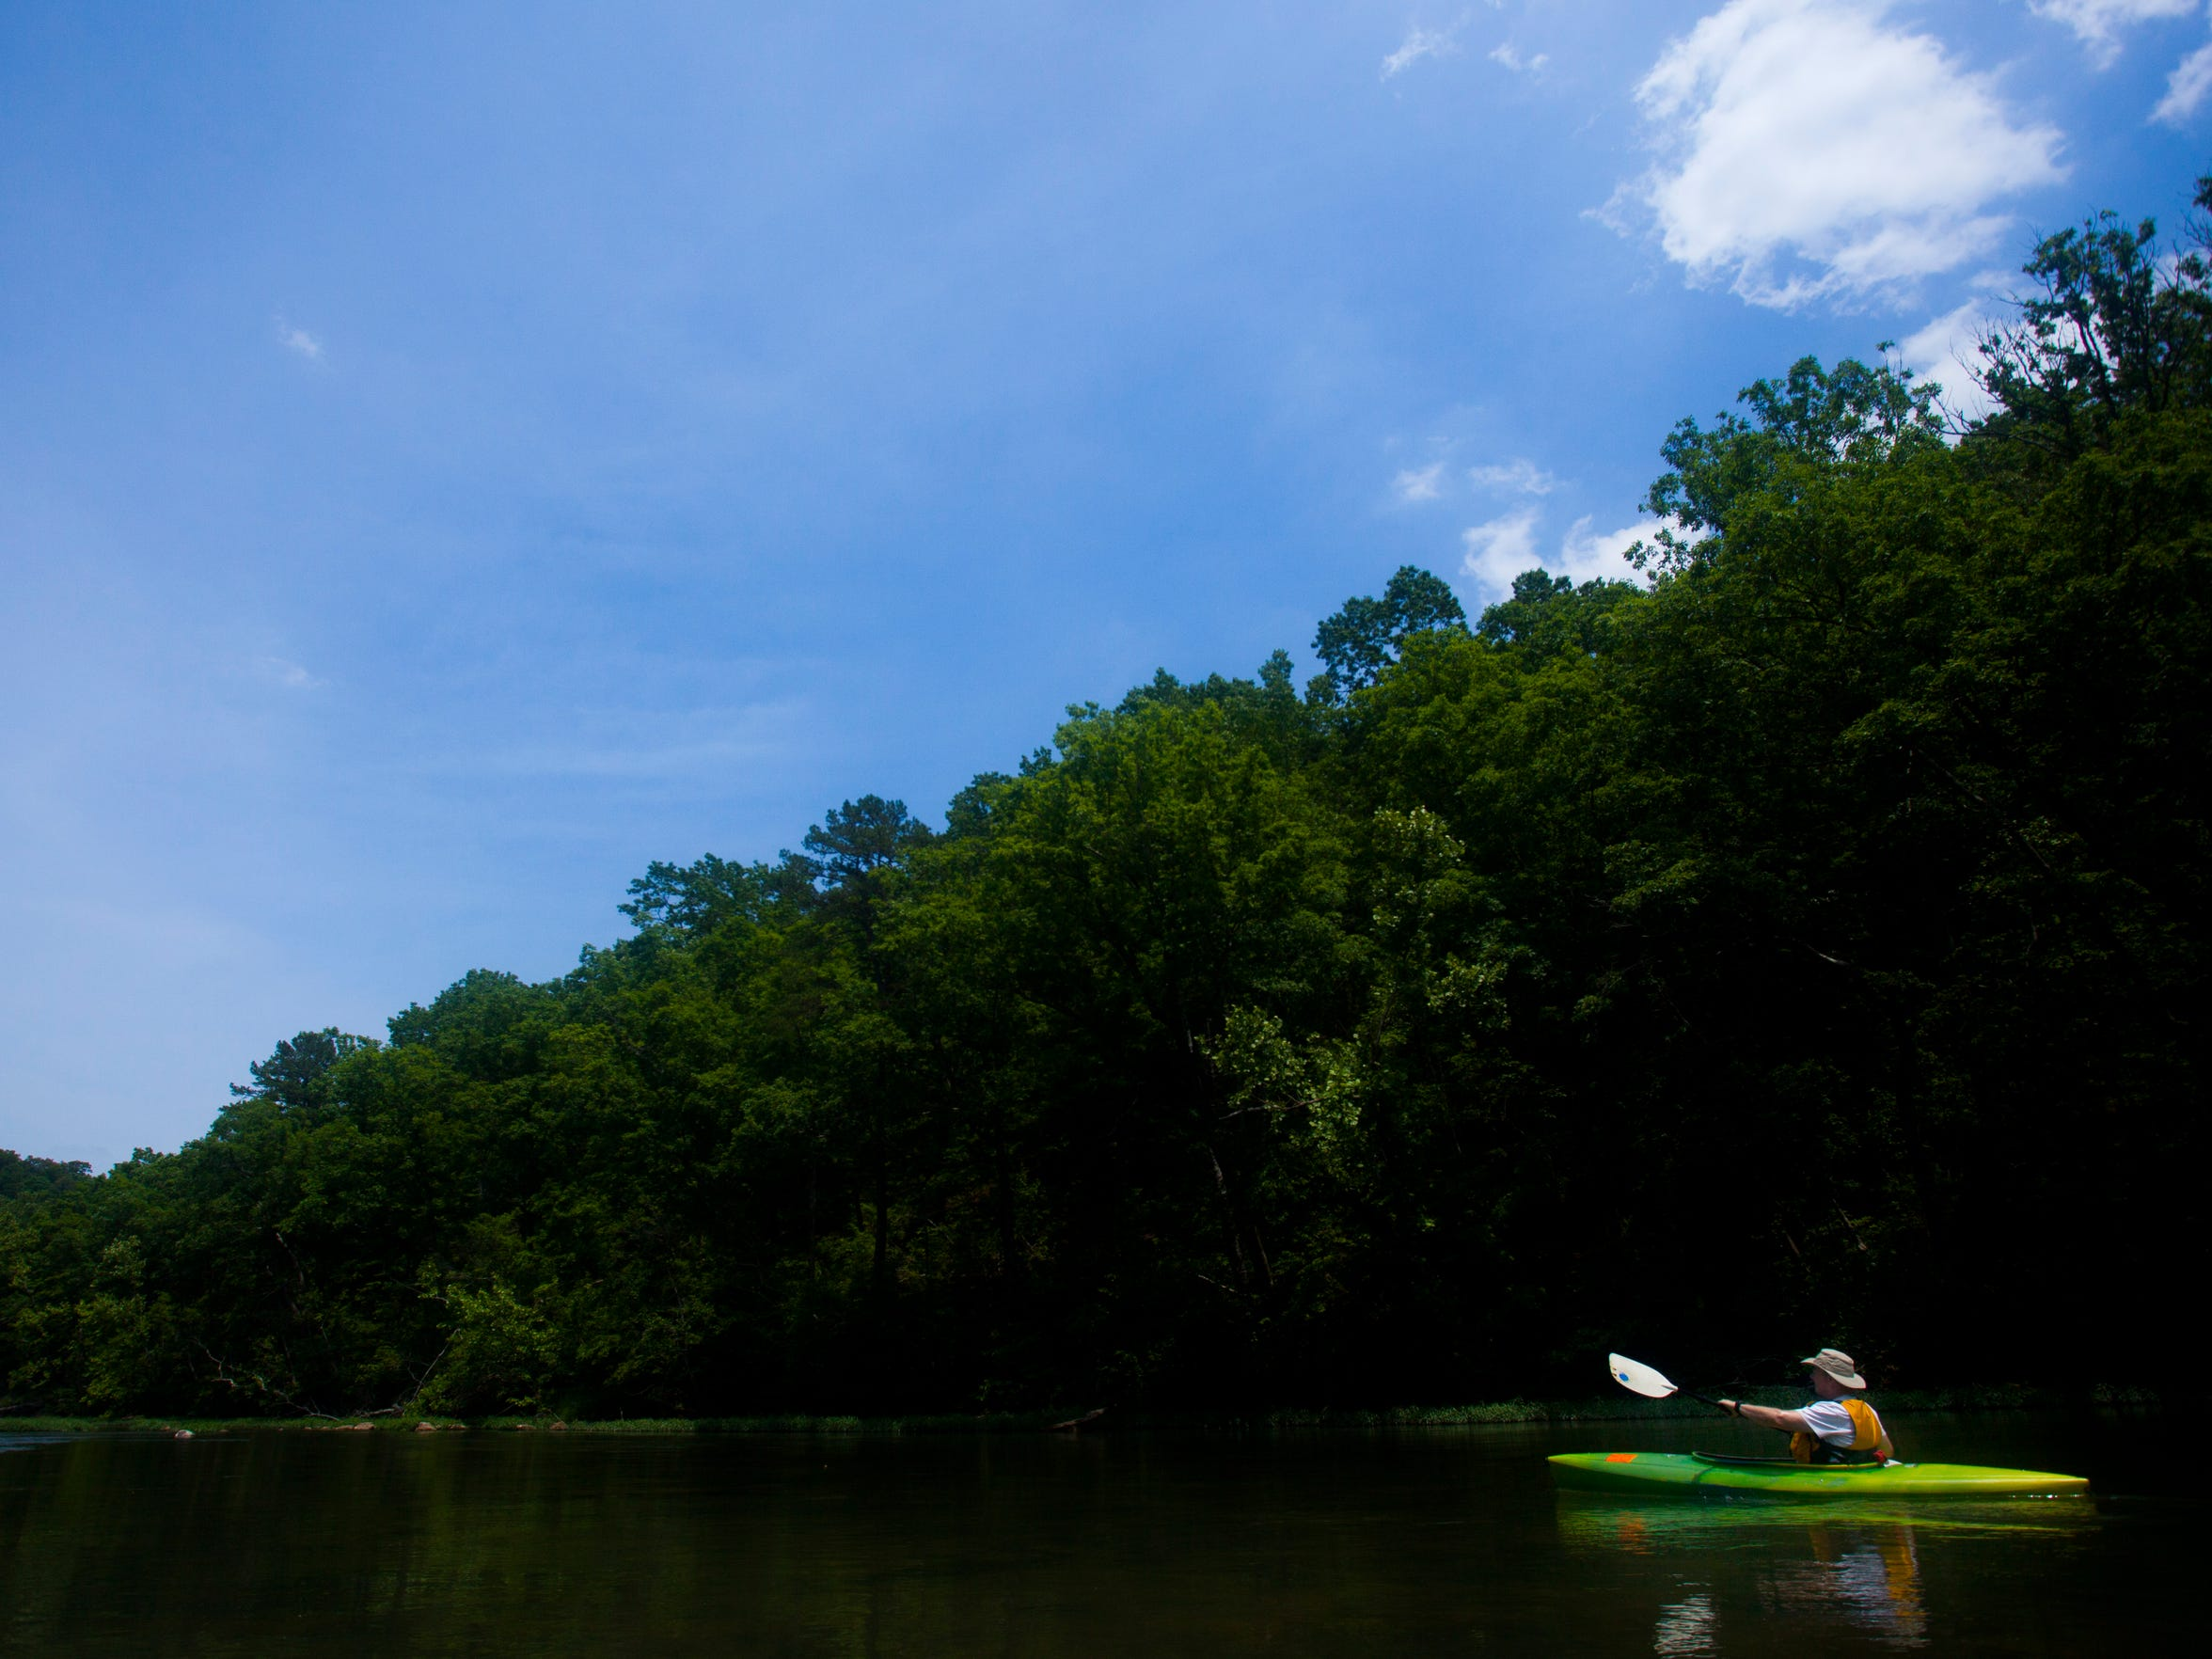 The Eleven Point River is just 2.5 hours east of Springfield